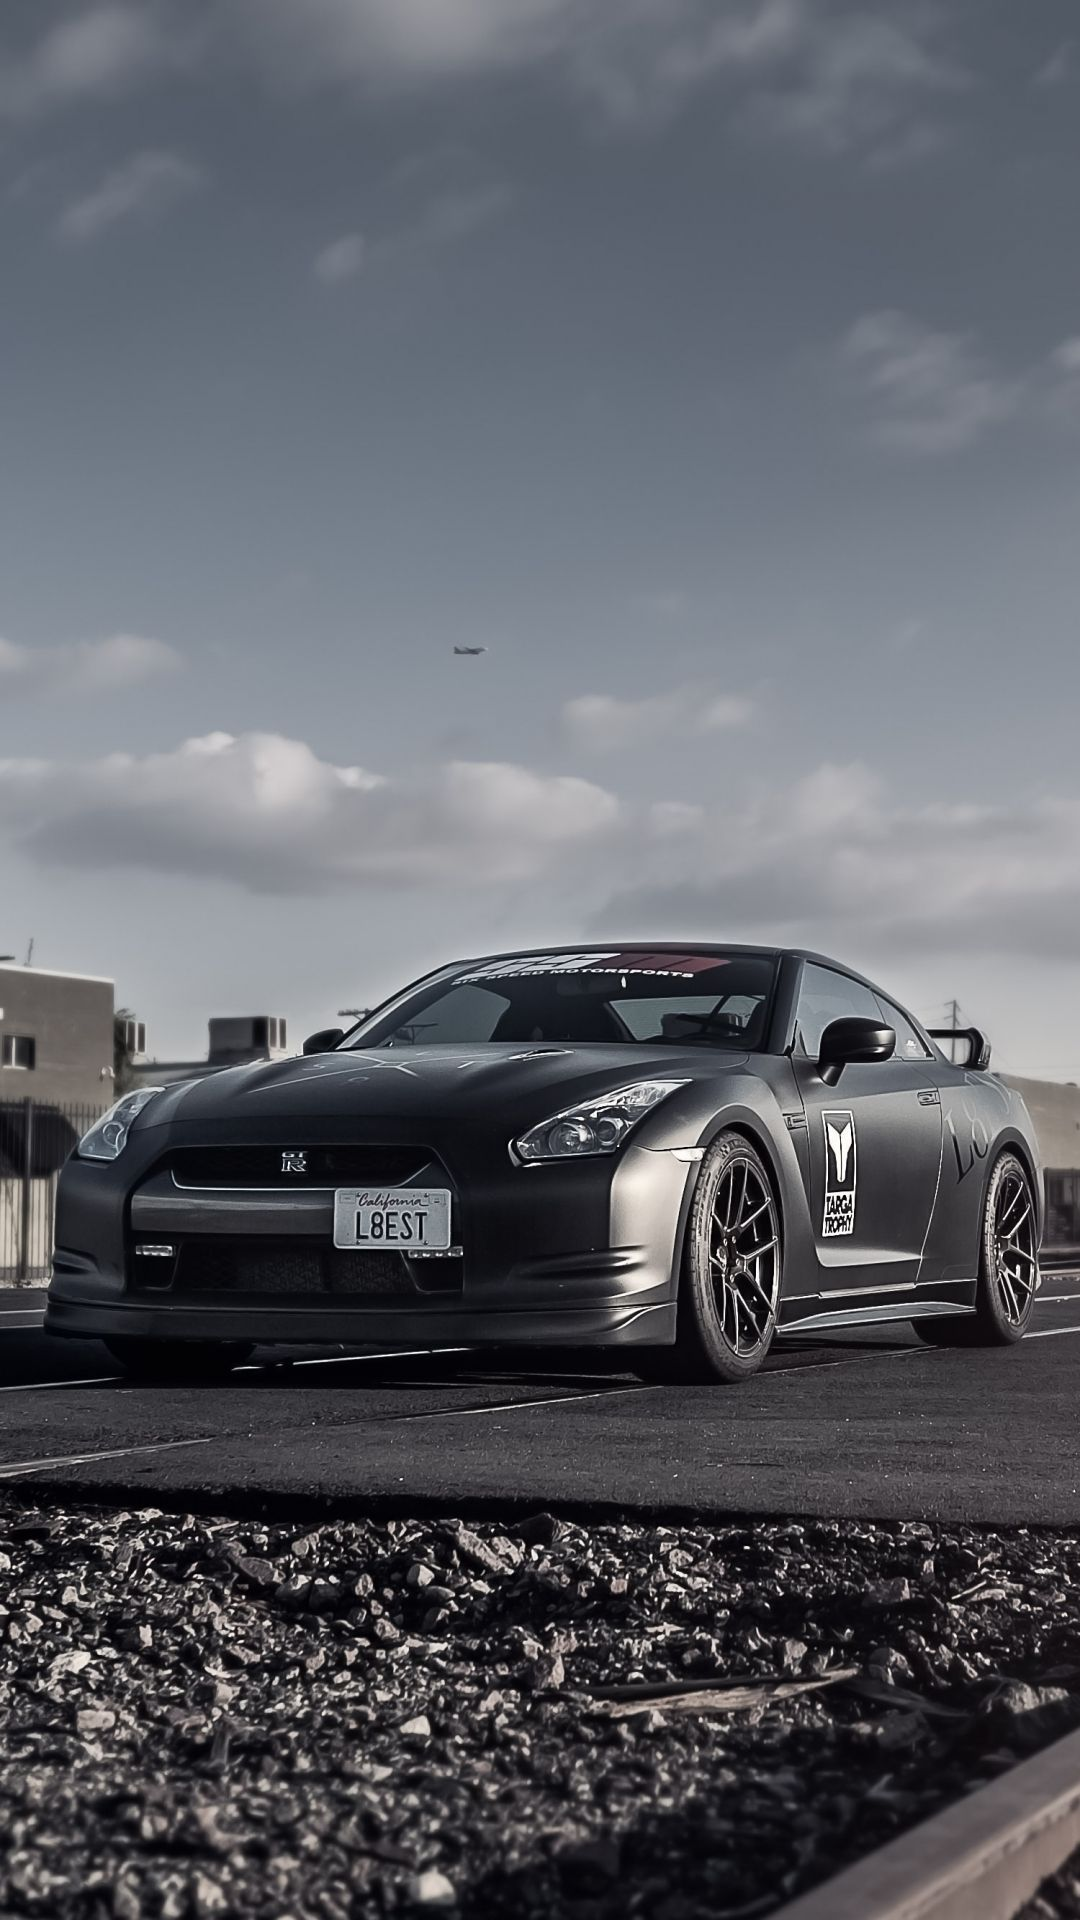 Iphone 6 Plus Vehicles Nissan Gt R Wallpaper Id 78181 Autos Deportivos Nissan Gtr Autos